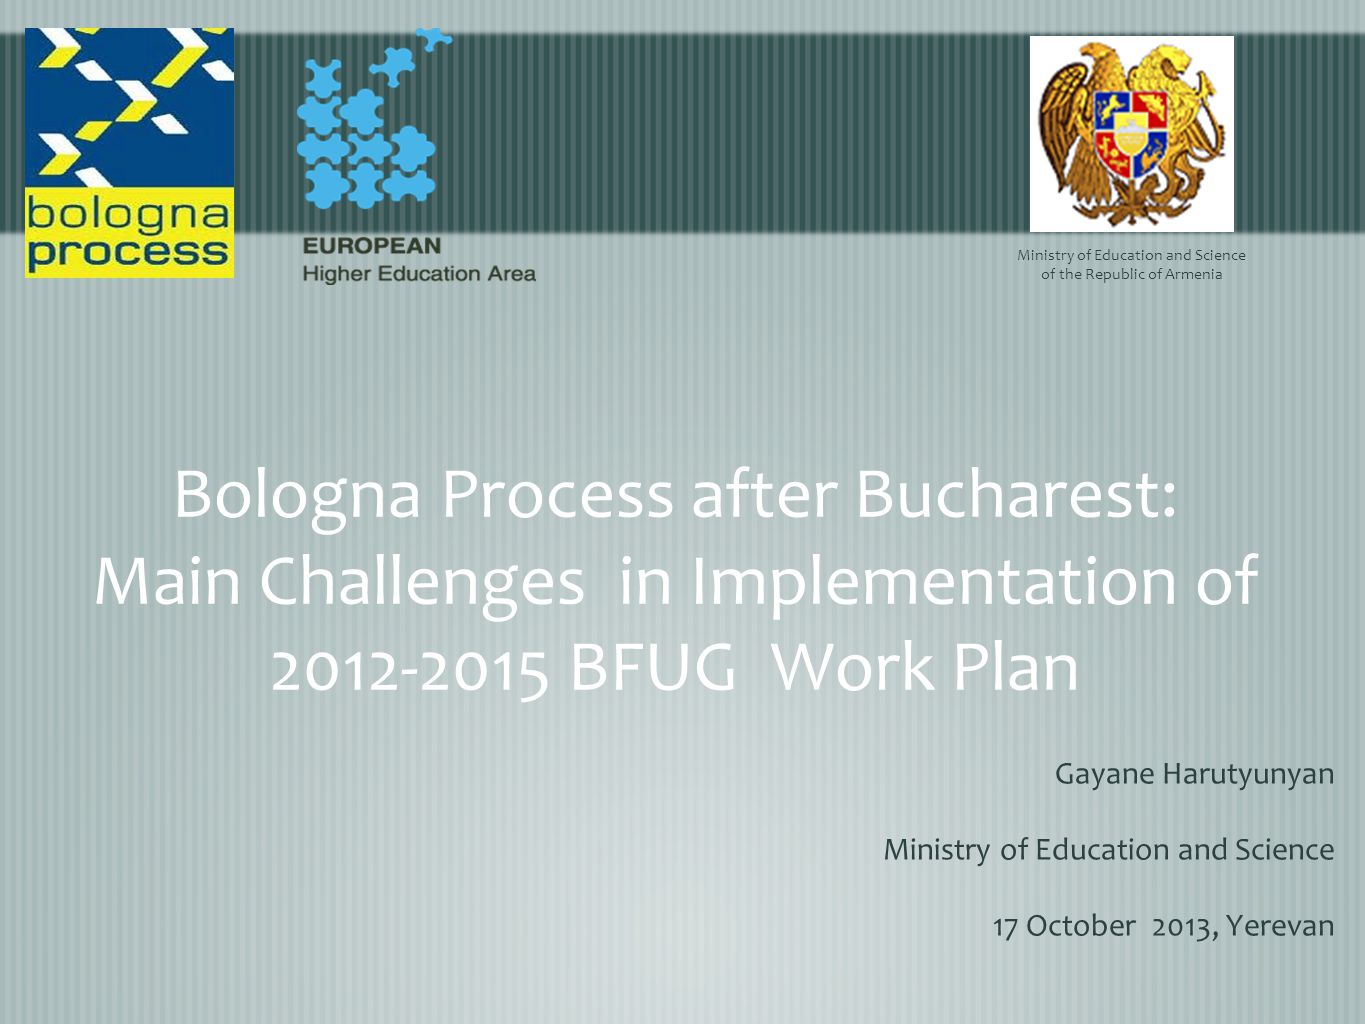 Bologna Process after Bucharest: Main Challenges in Implementation of 2012-2015 BFUG Work Plan Gayane Harutyunyan Ministry of Education and Science 17 October 2013, Yerevan Ministry of Education and Science of the Republic of Armenia